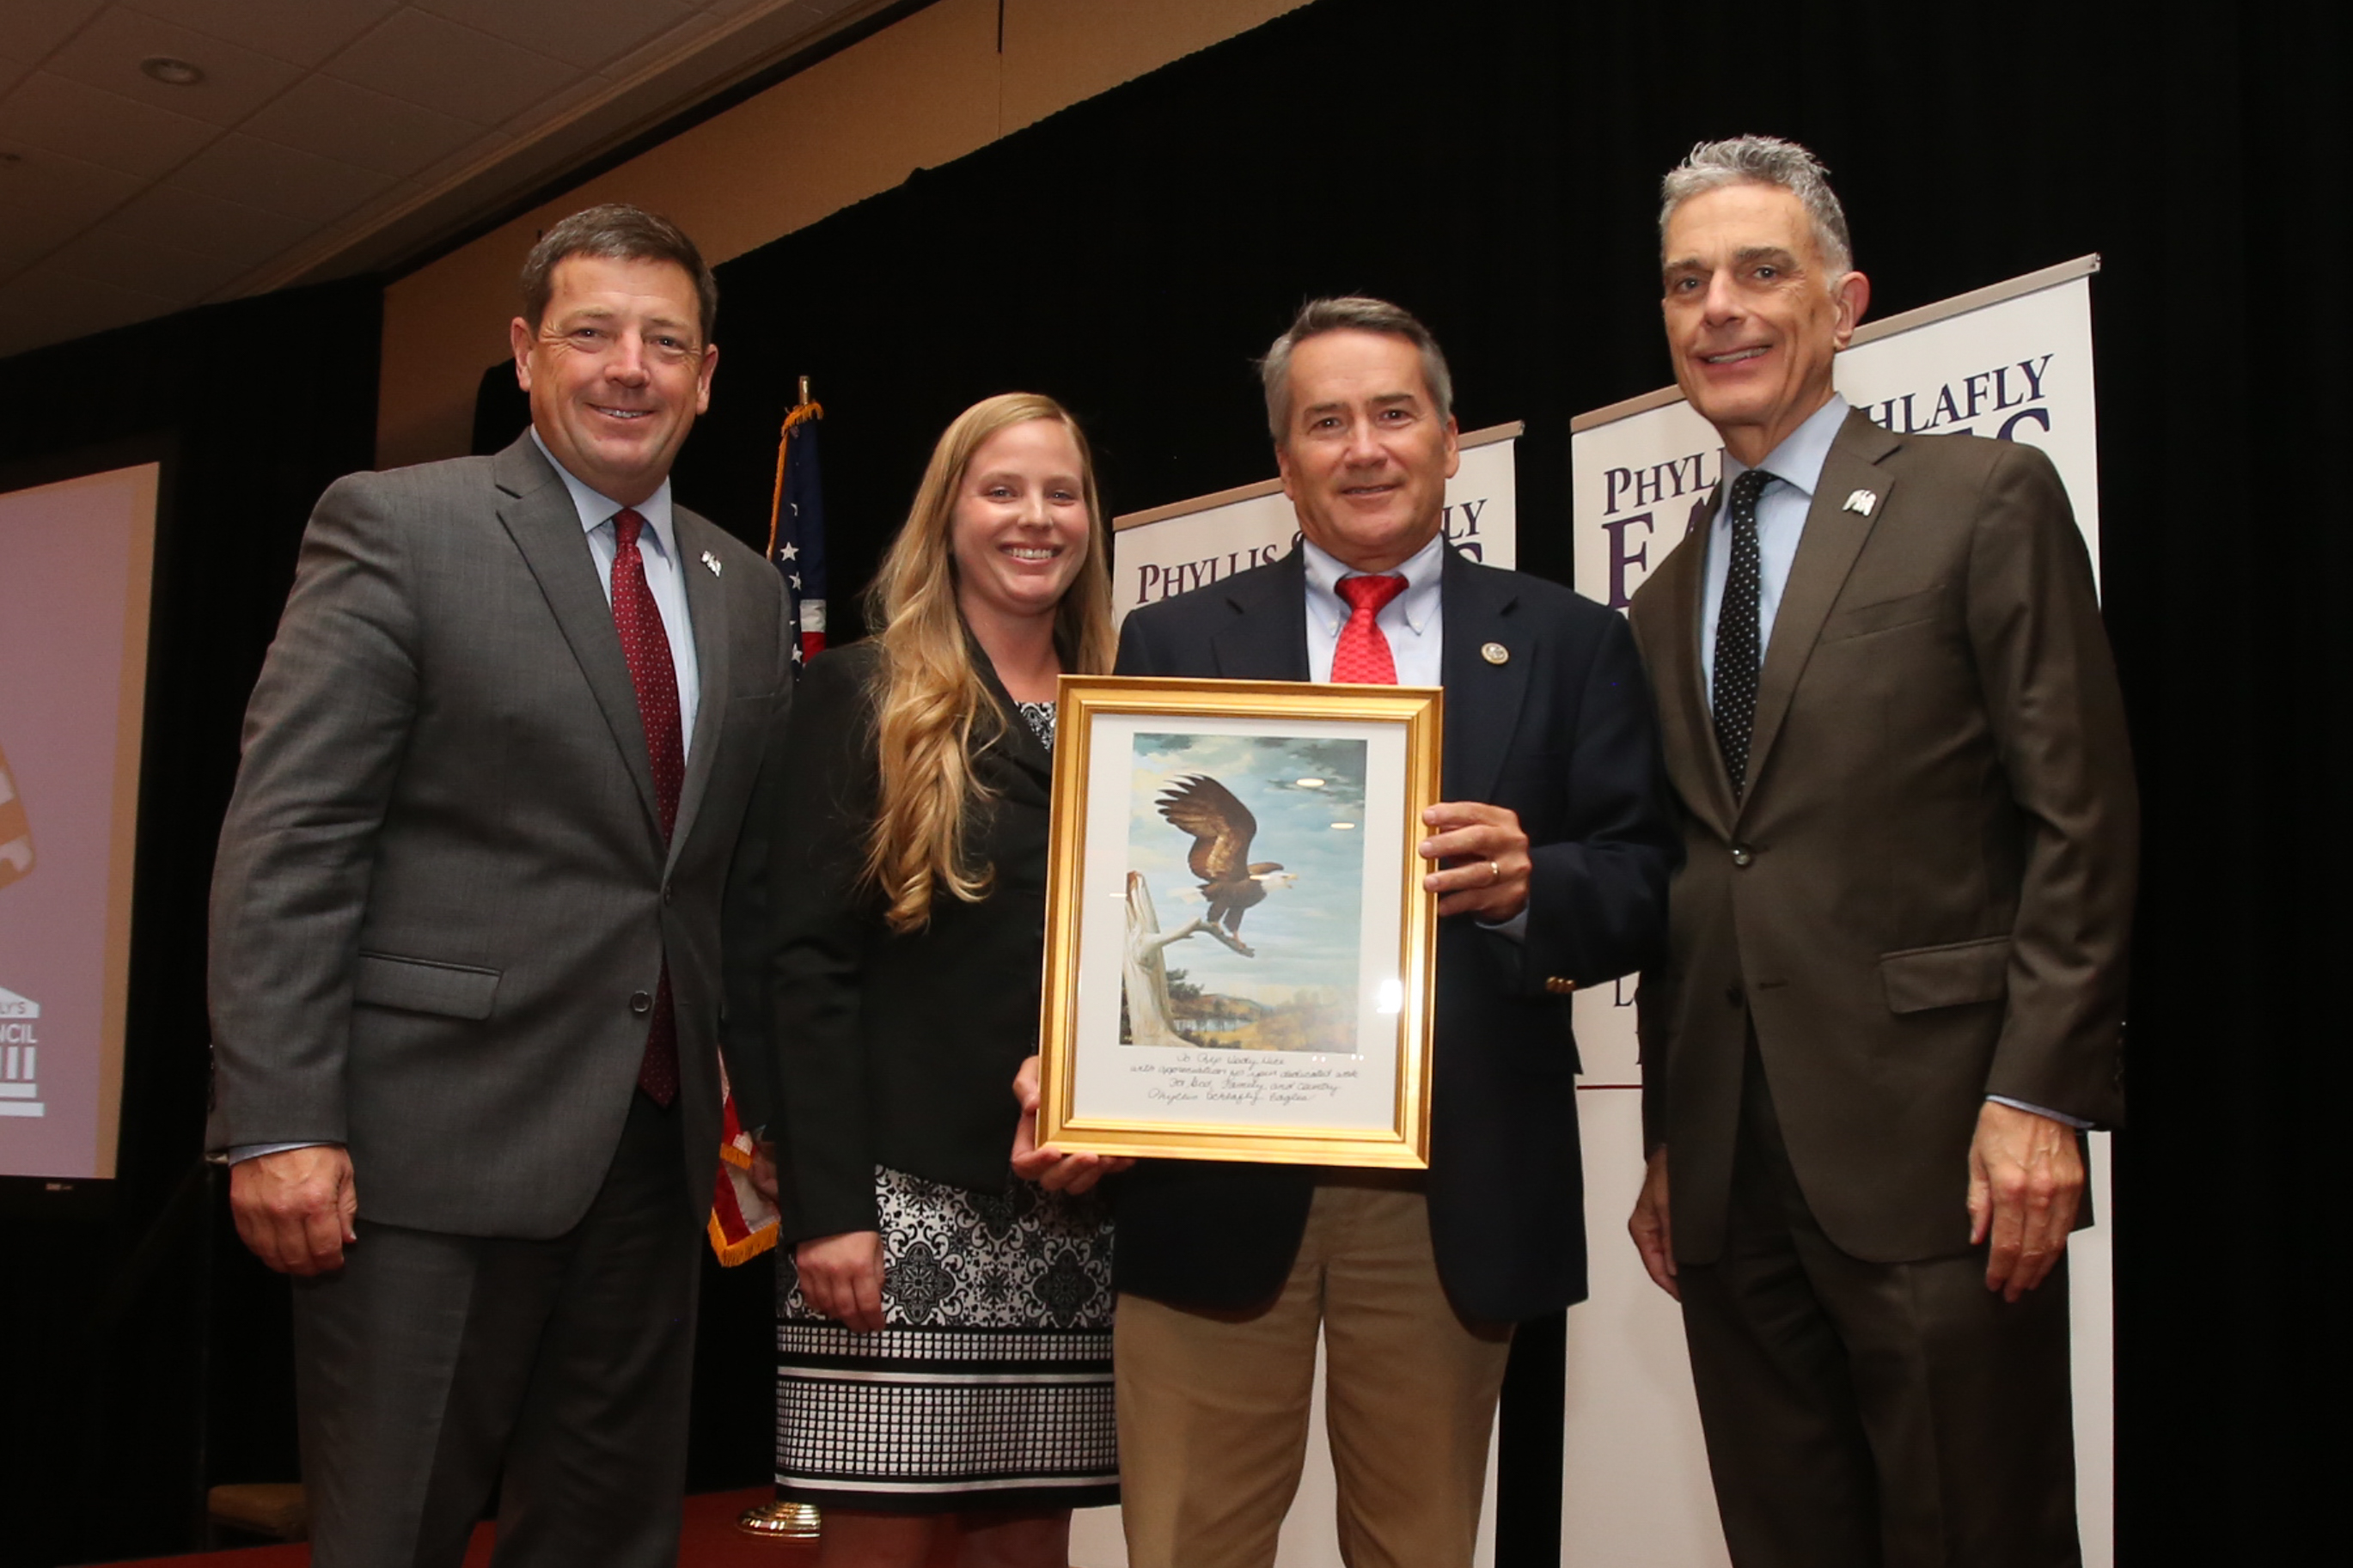 Rep. Jody Hice (GA) keynote speaker at Eagle Council presented Eagle Award